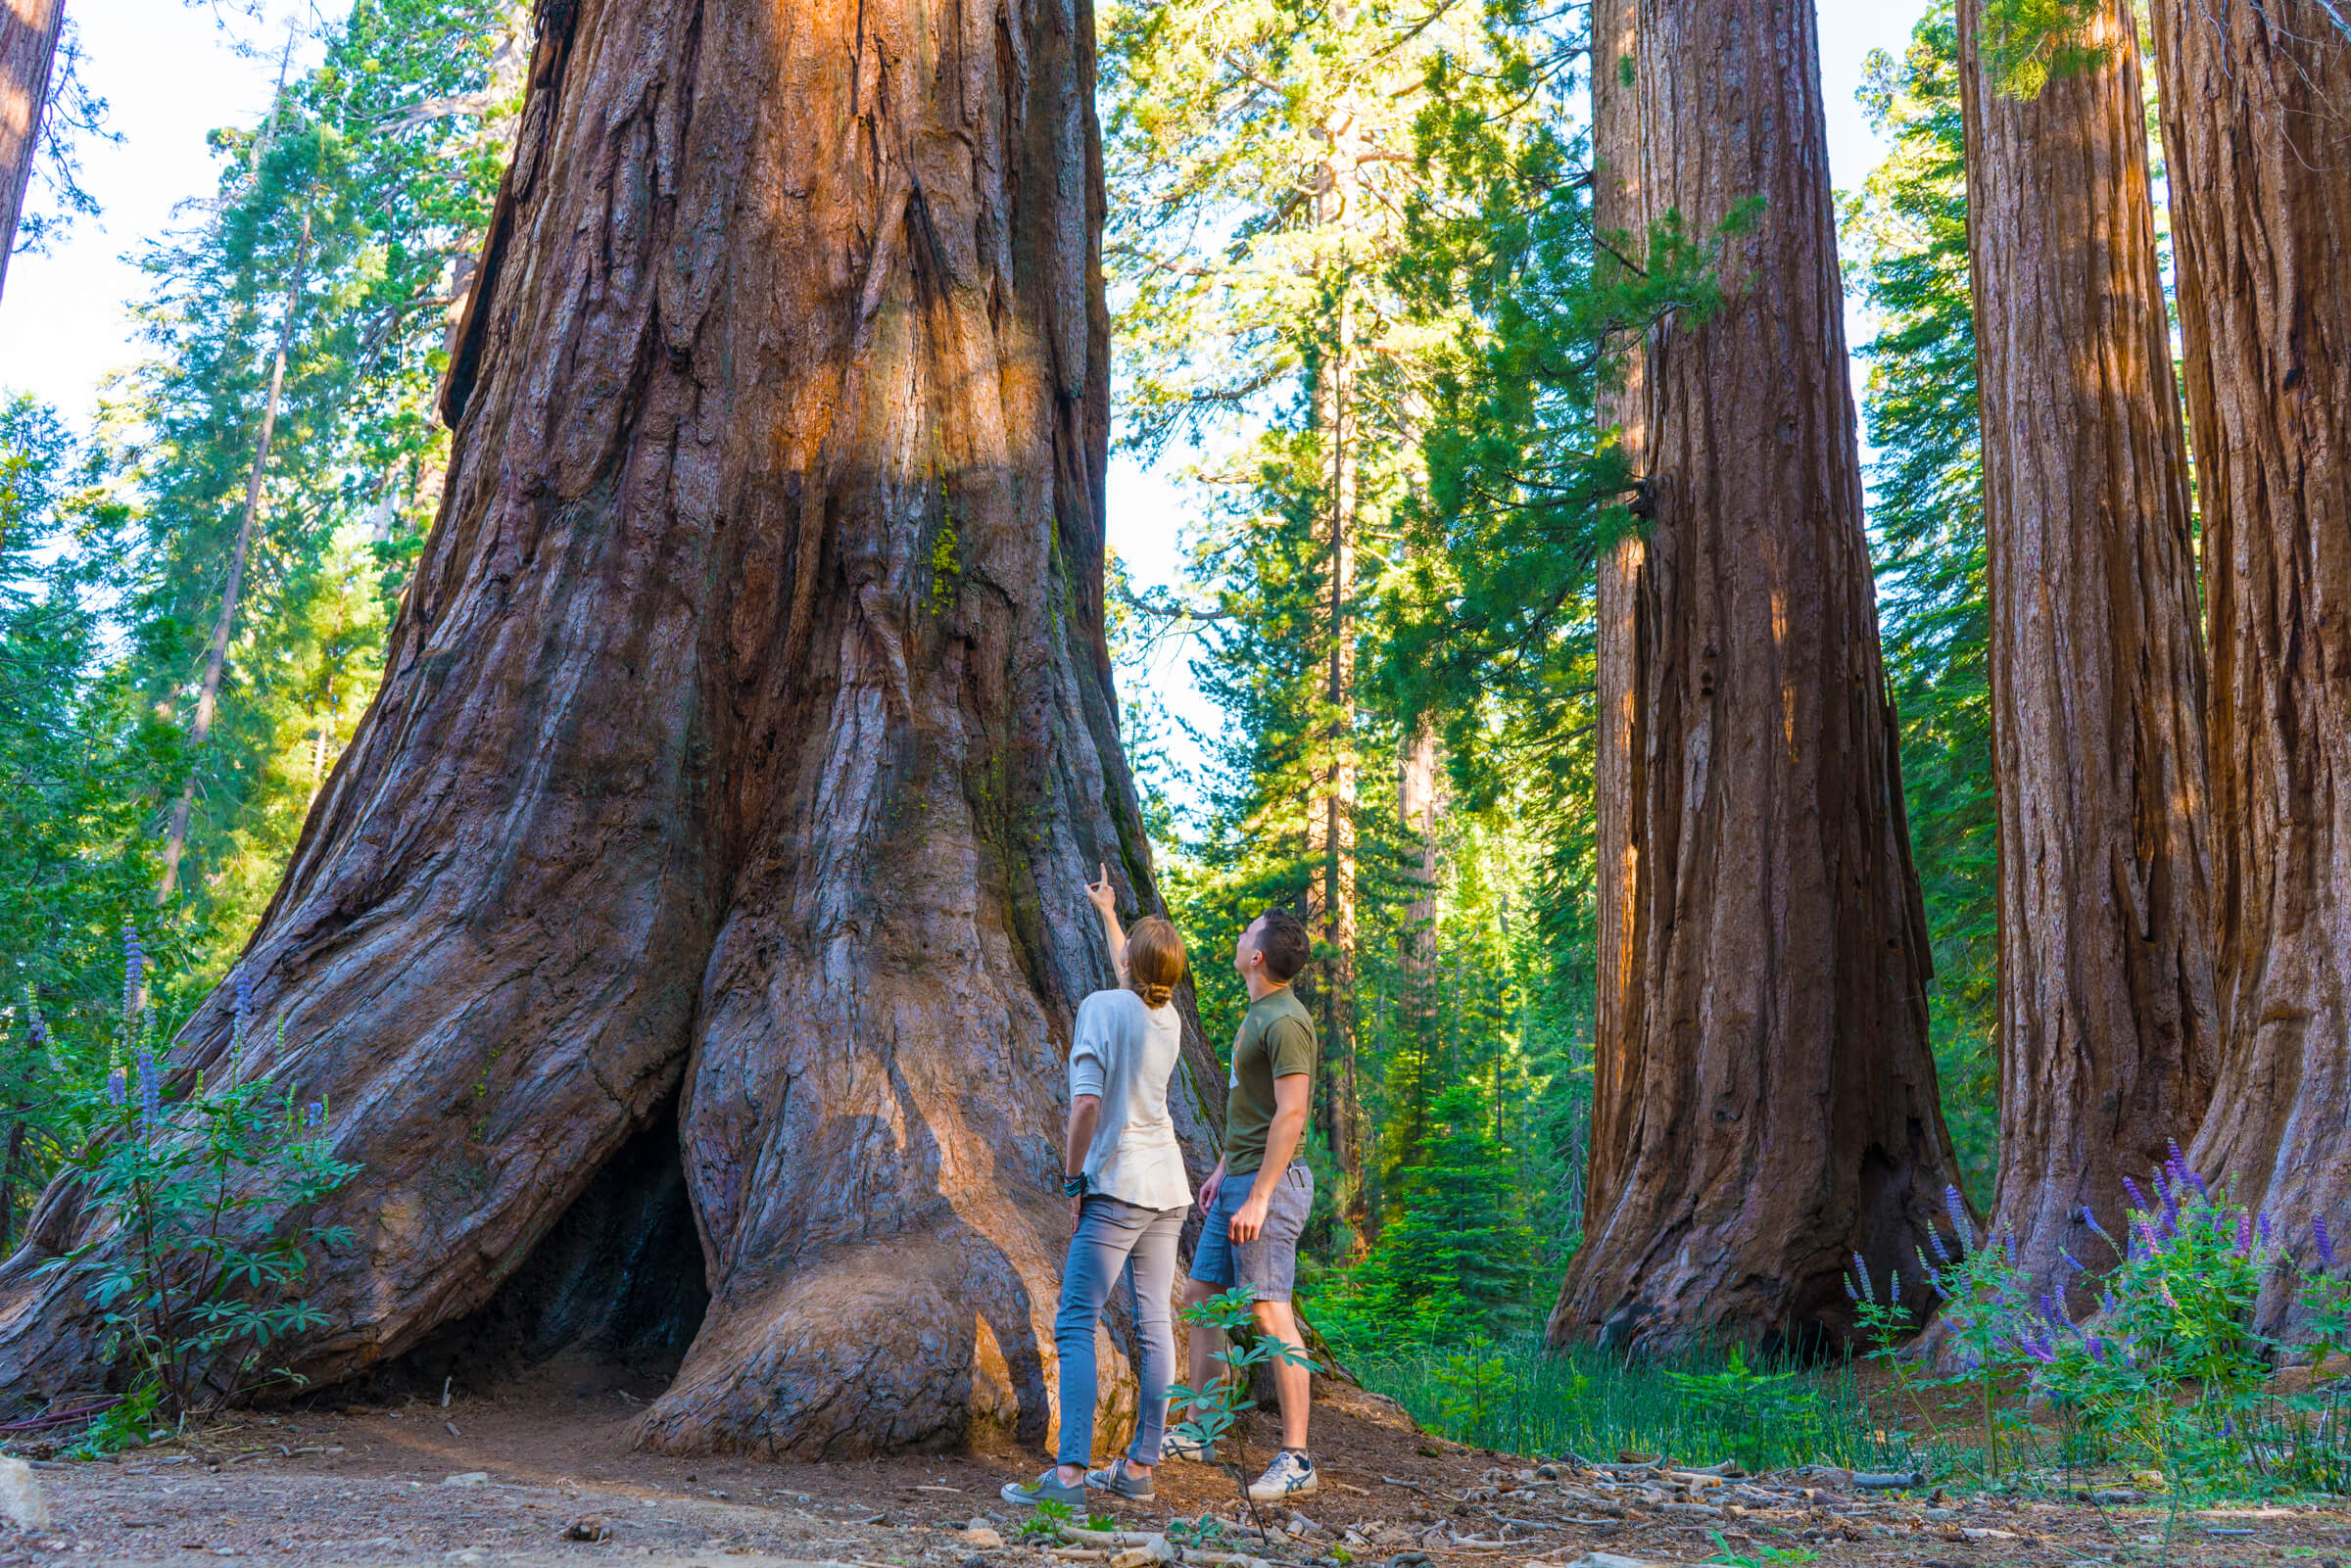 Free Yosemite Park Pass + Giant Sequoia Seedling Offer